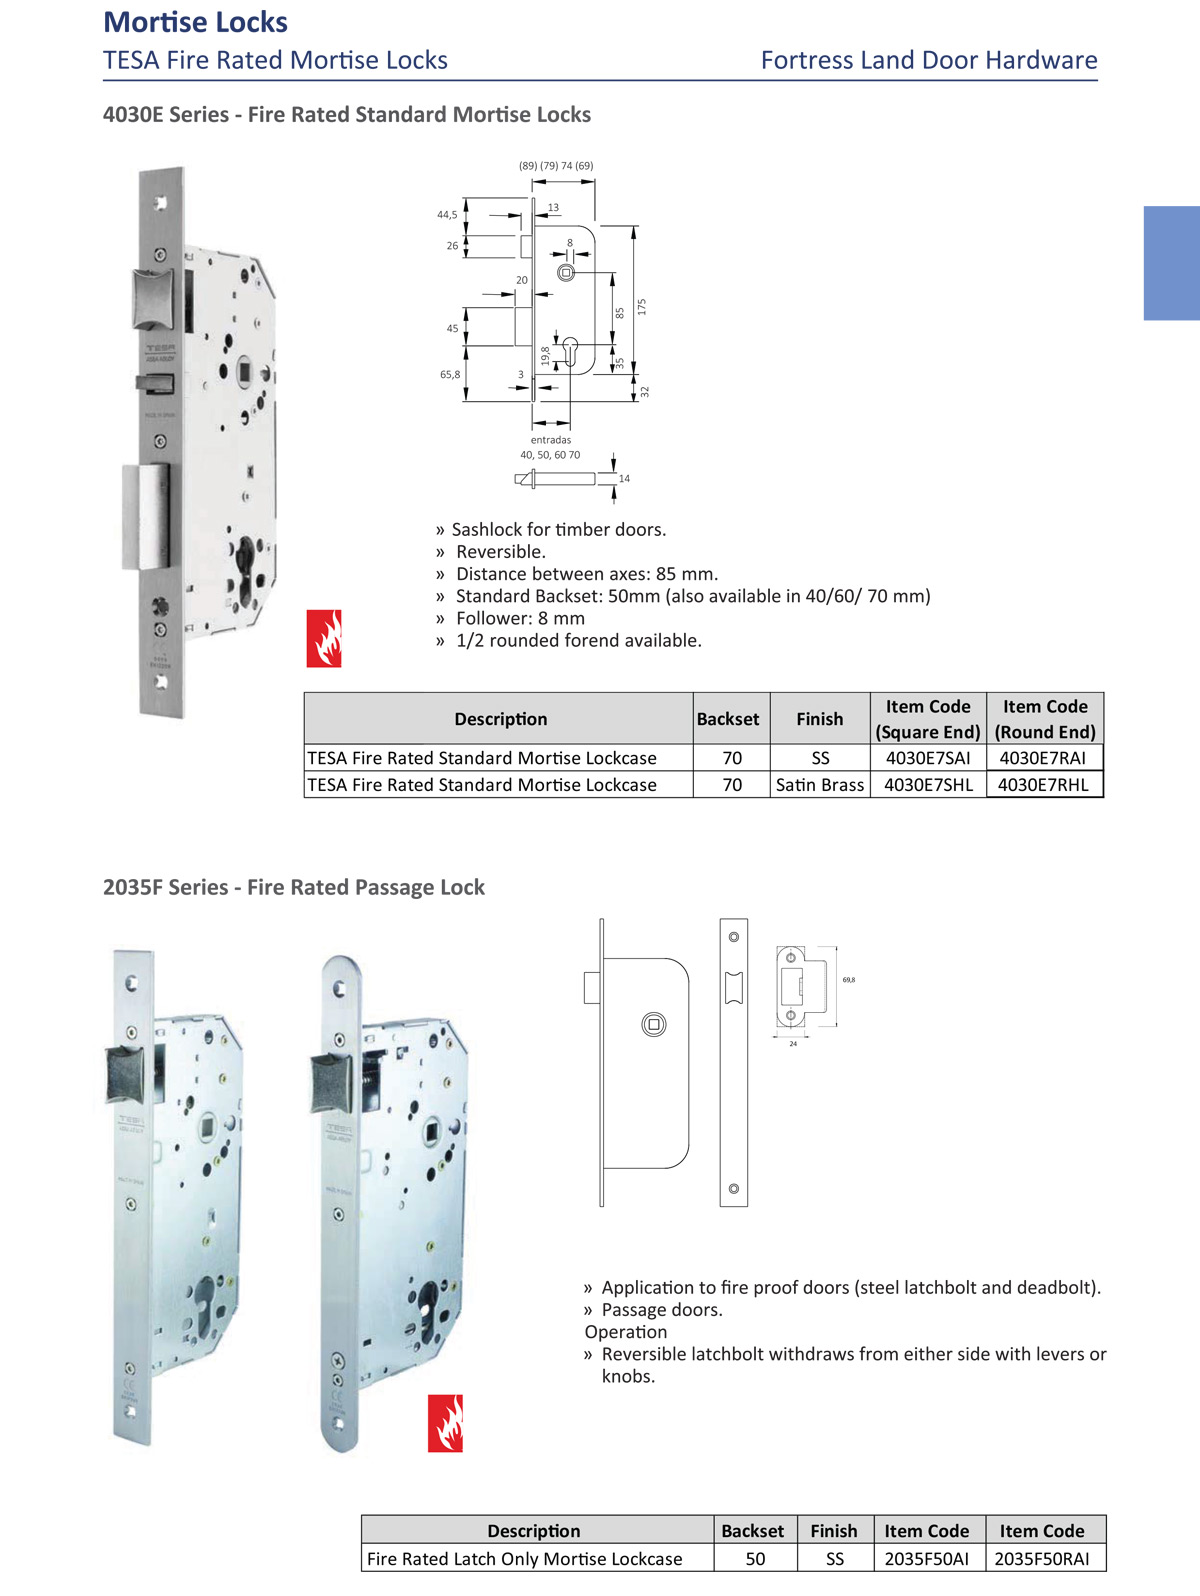 fire proof door lock, fire rated mortise lock, fire door lock, automatic deadlock, passage lock, deadbolt lock, latch lock, Fortress Land Security Company